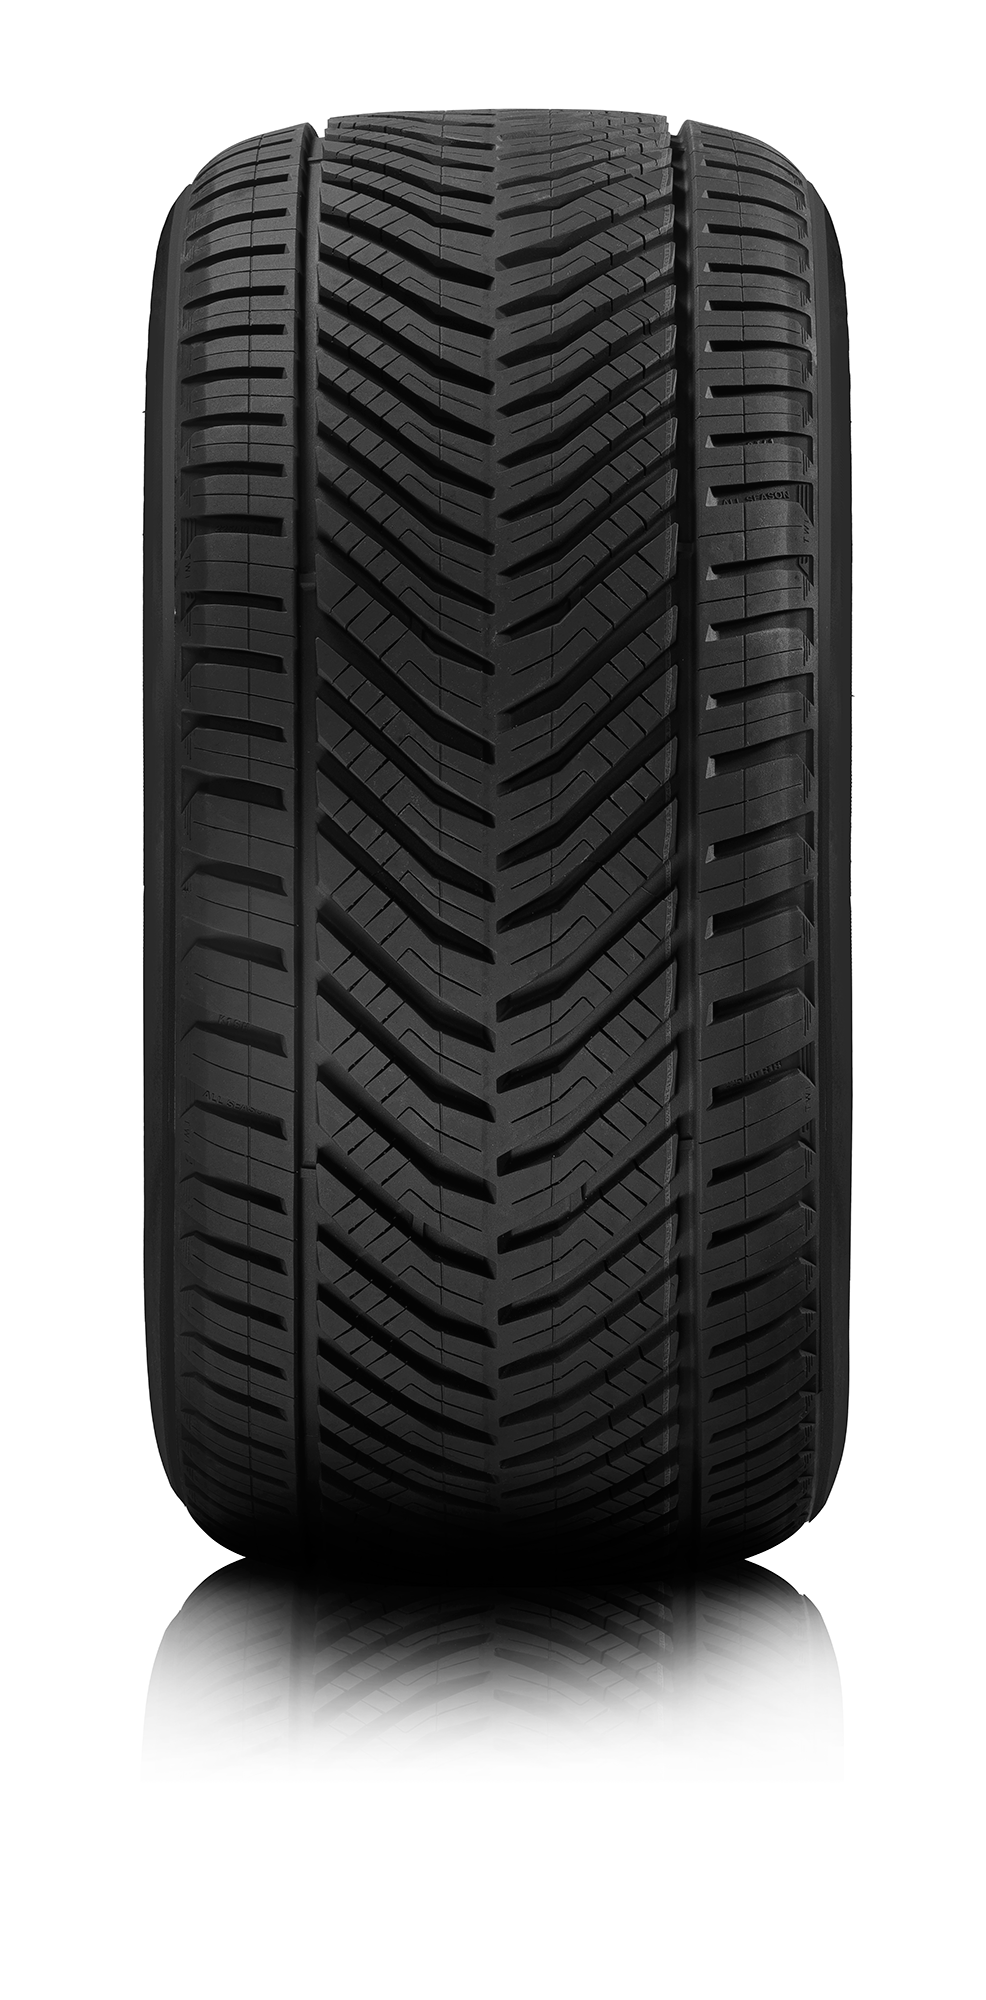 Gomme Nuove Orium 195/65 R15 91H ALL SEASON M+S pneumatici nuovi All Season